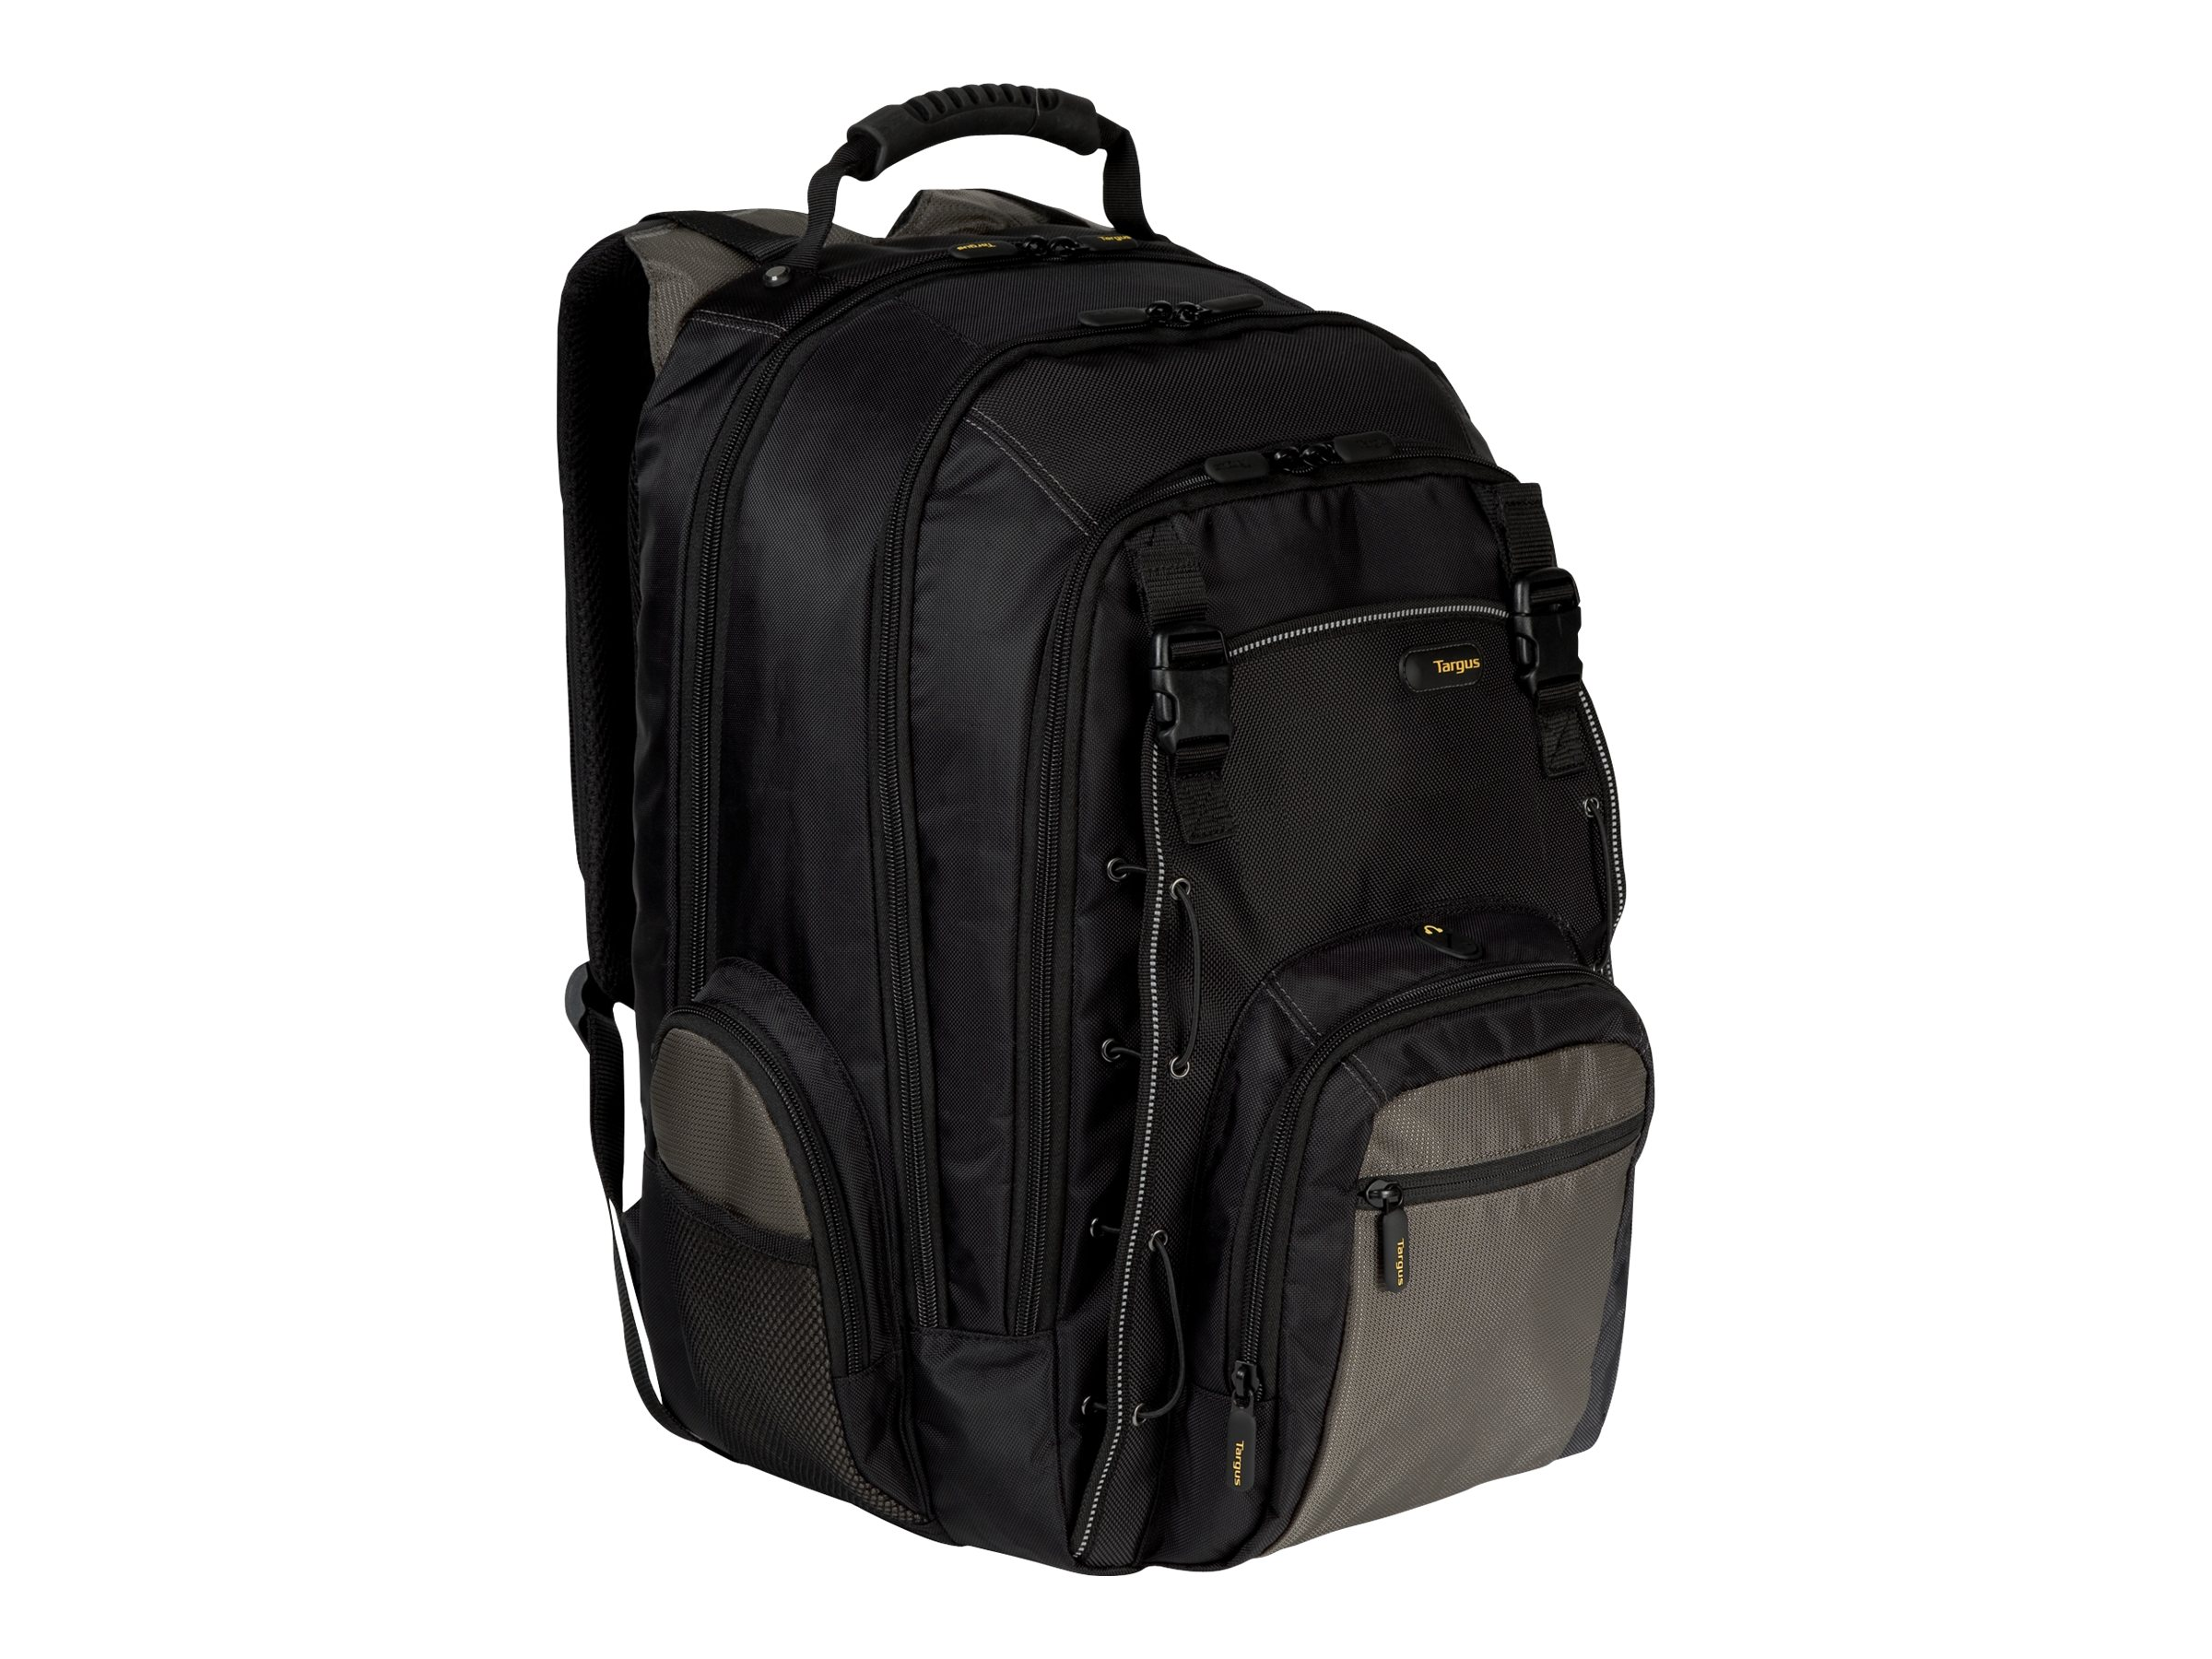 Targus CityGear 15.4 Chicago Notebook Backpack Black Gray Yellow, TCG650